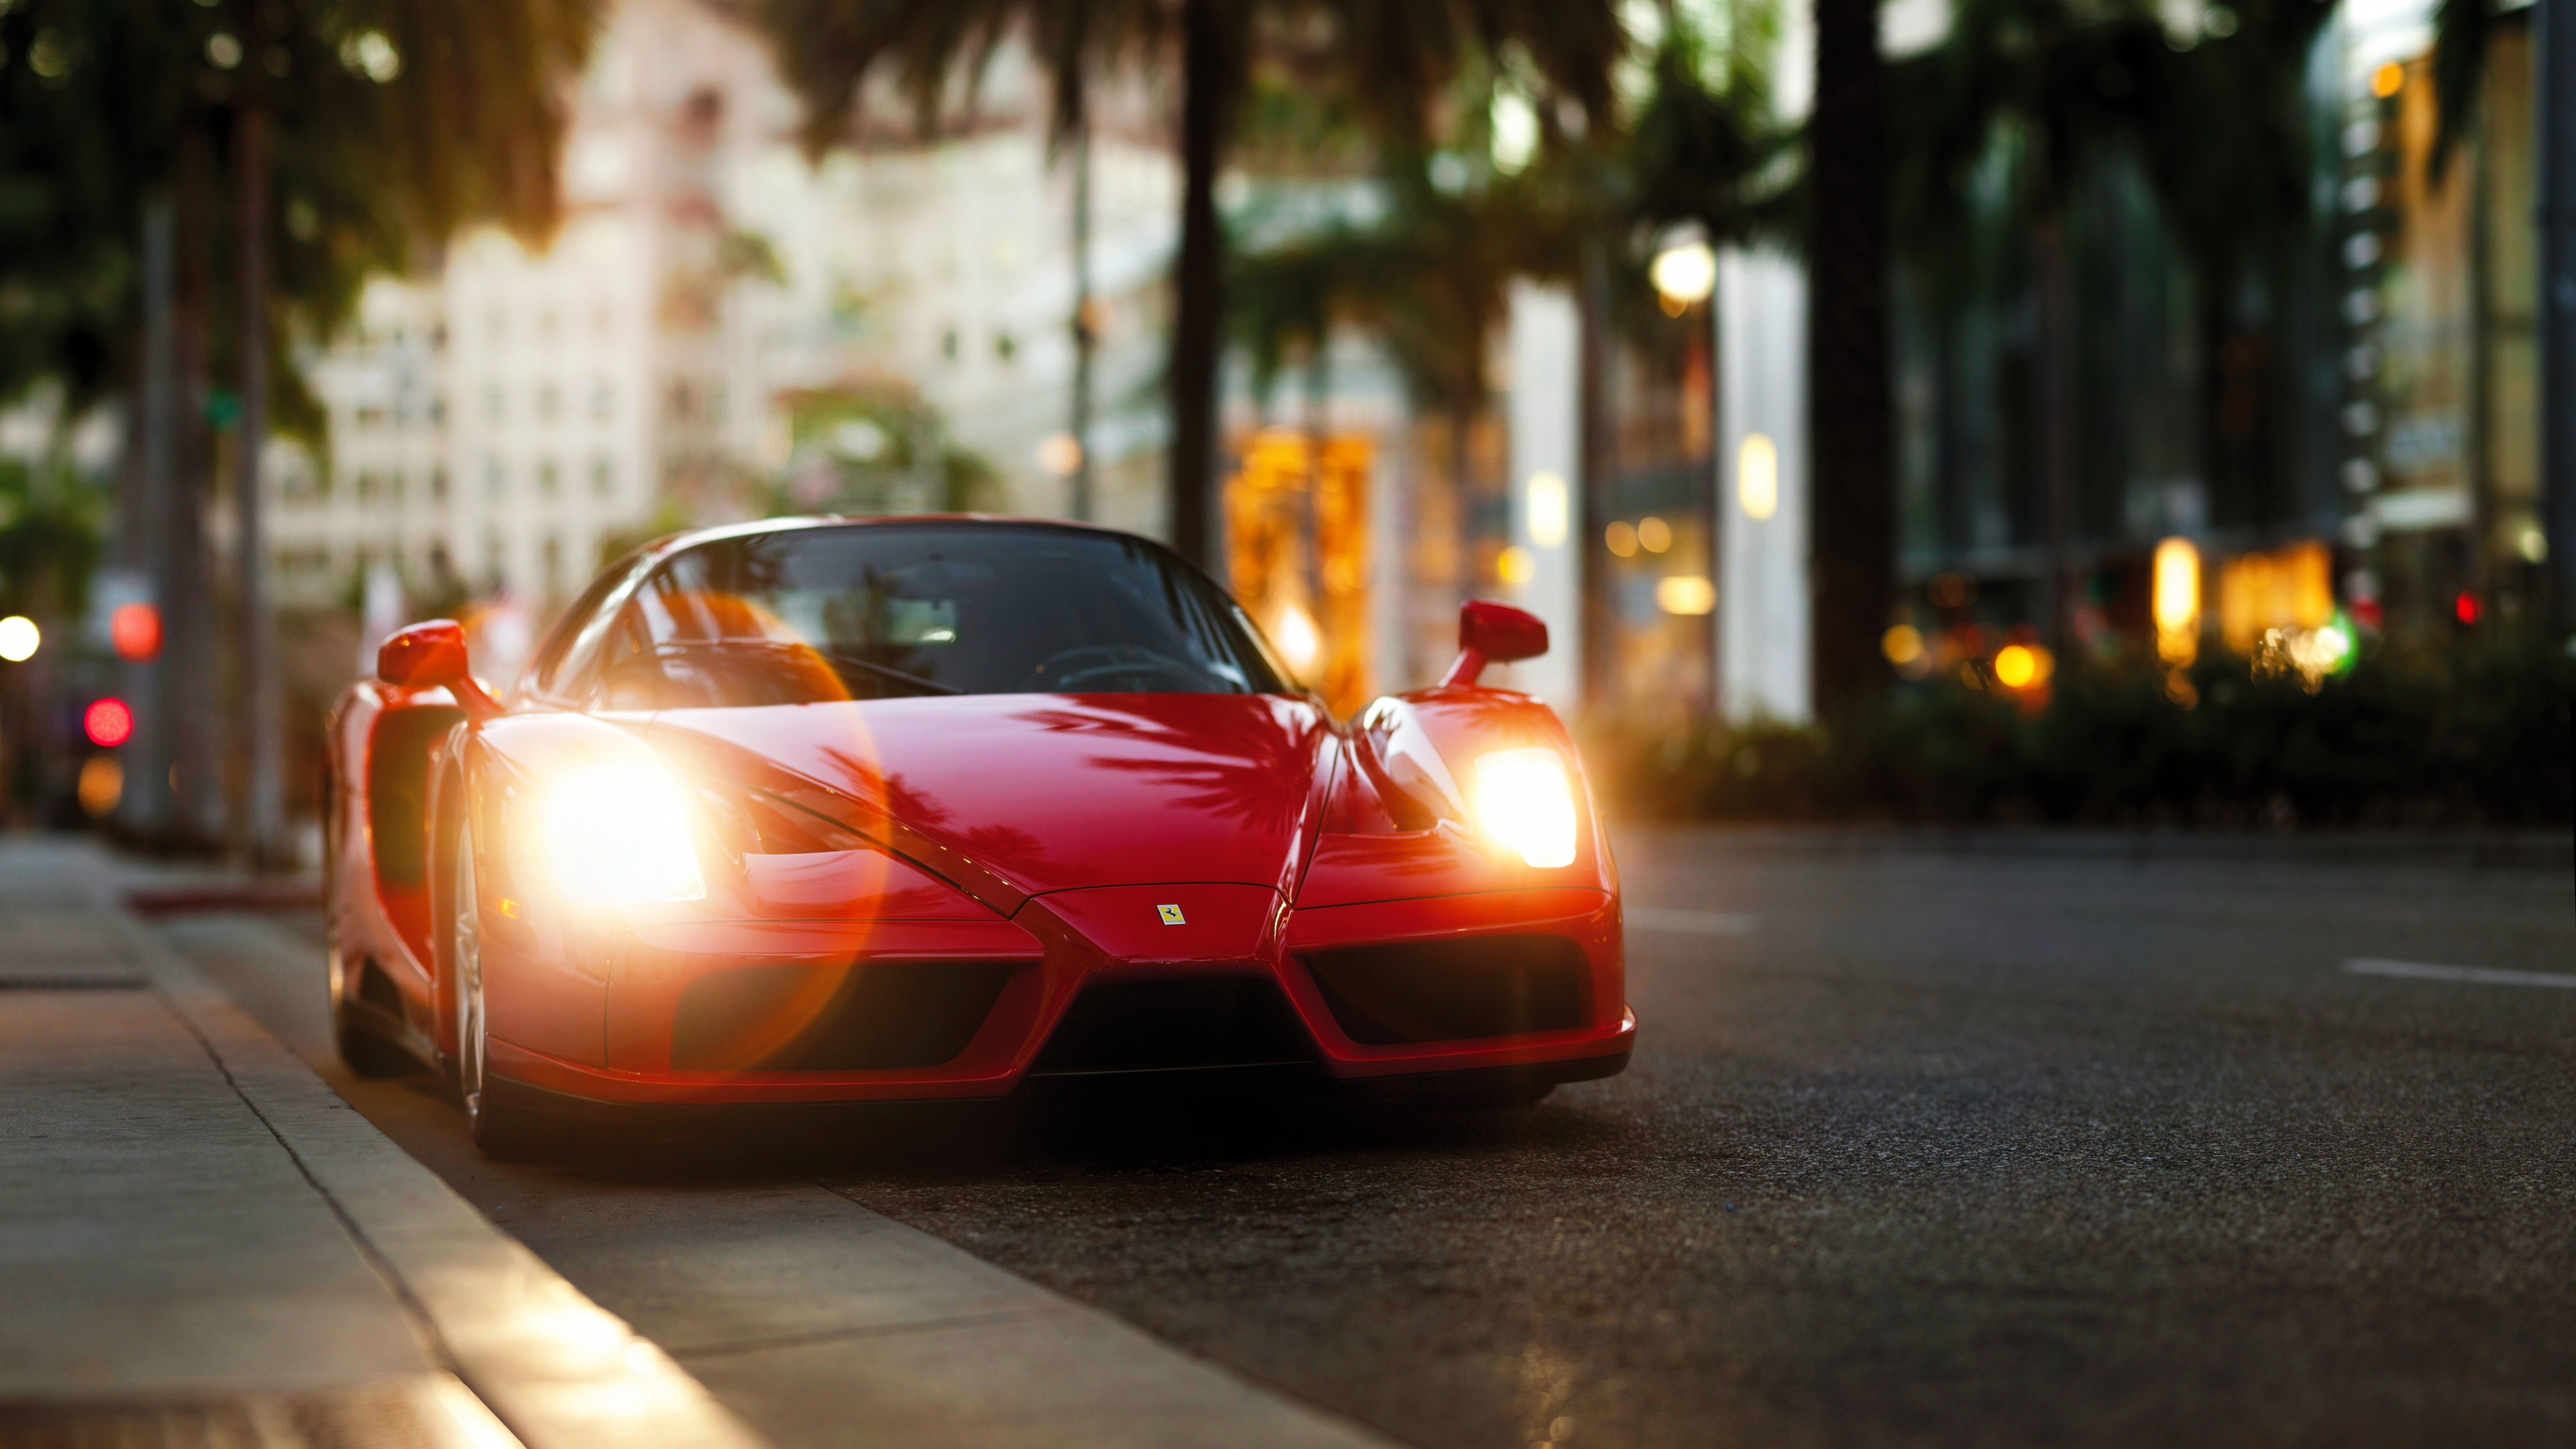 Ferrari Enzo Red, HD Cars, 4k Wallpapers, Images, Backgrounds, Photos and Pictures